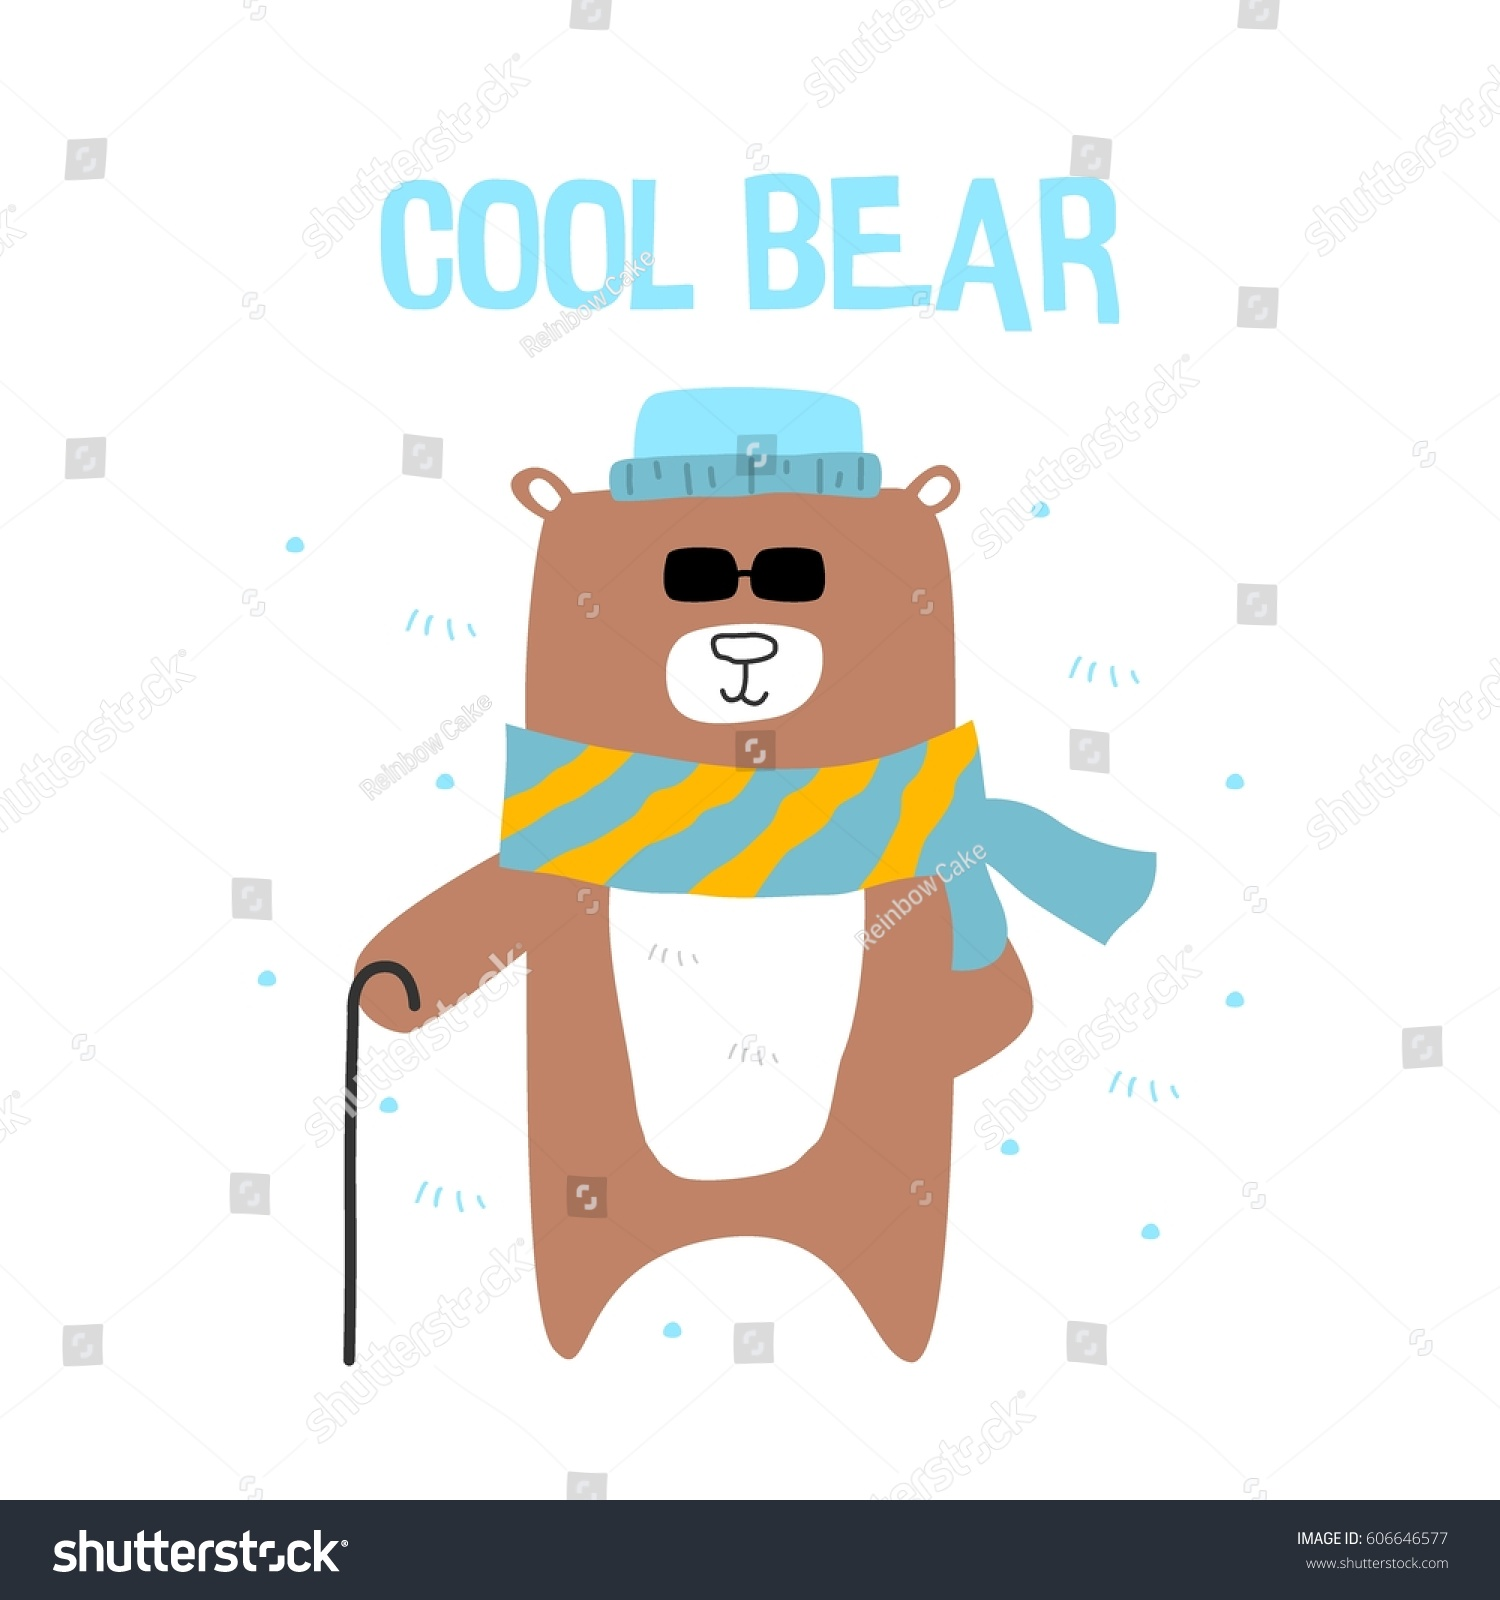 cool bear wearing sunglasses standing windy stock vector (royalty